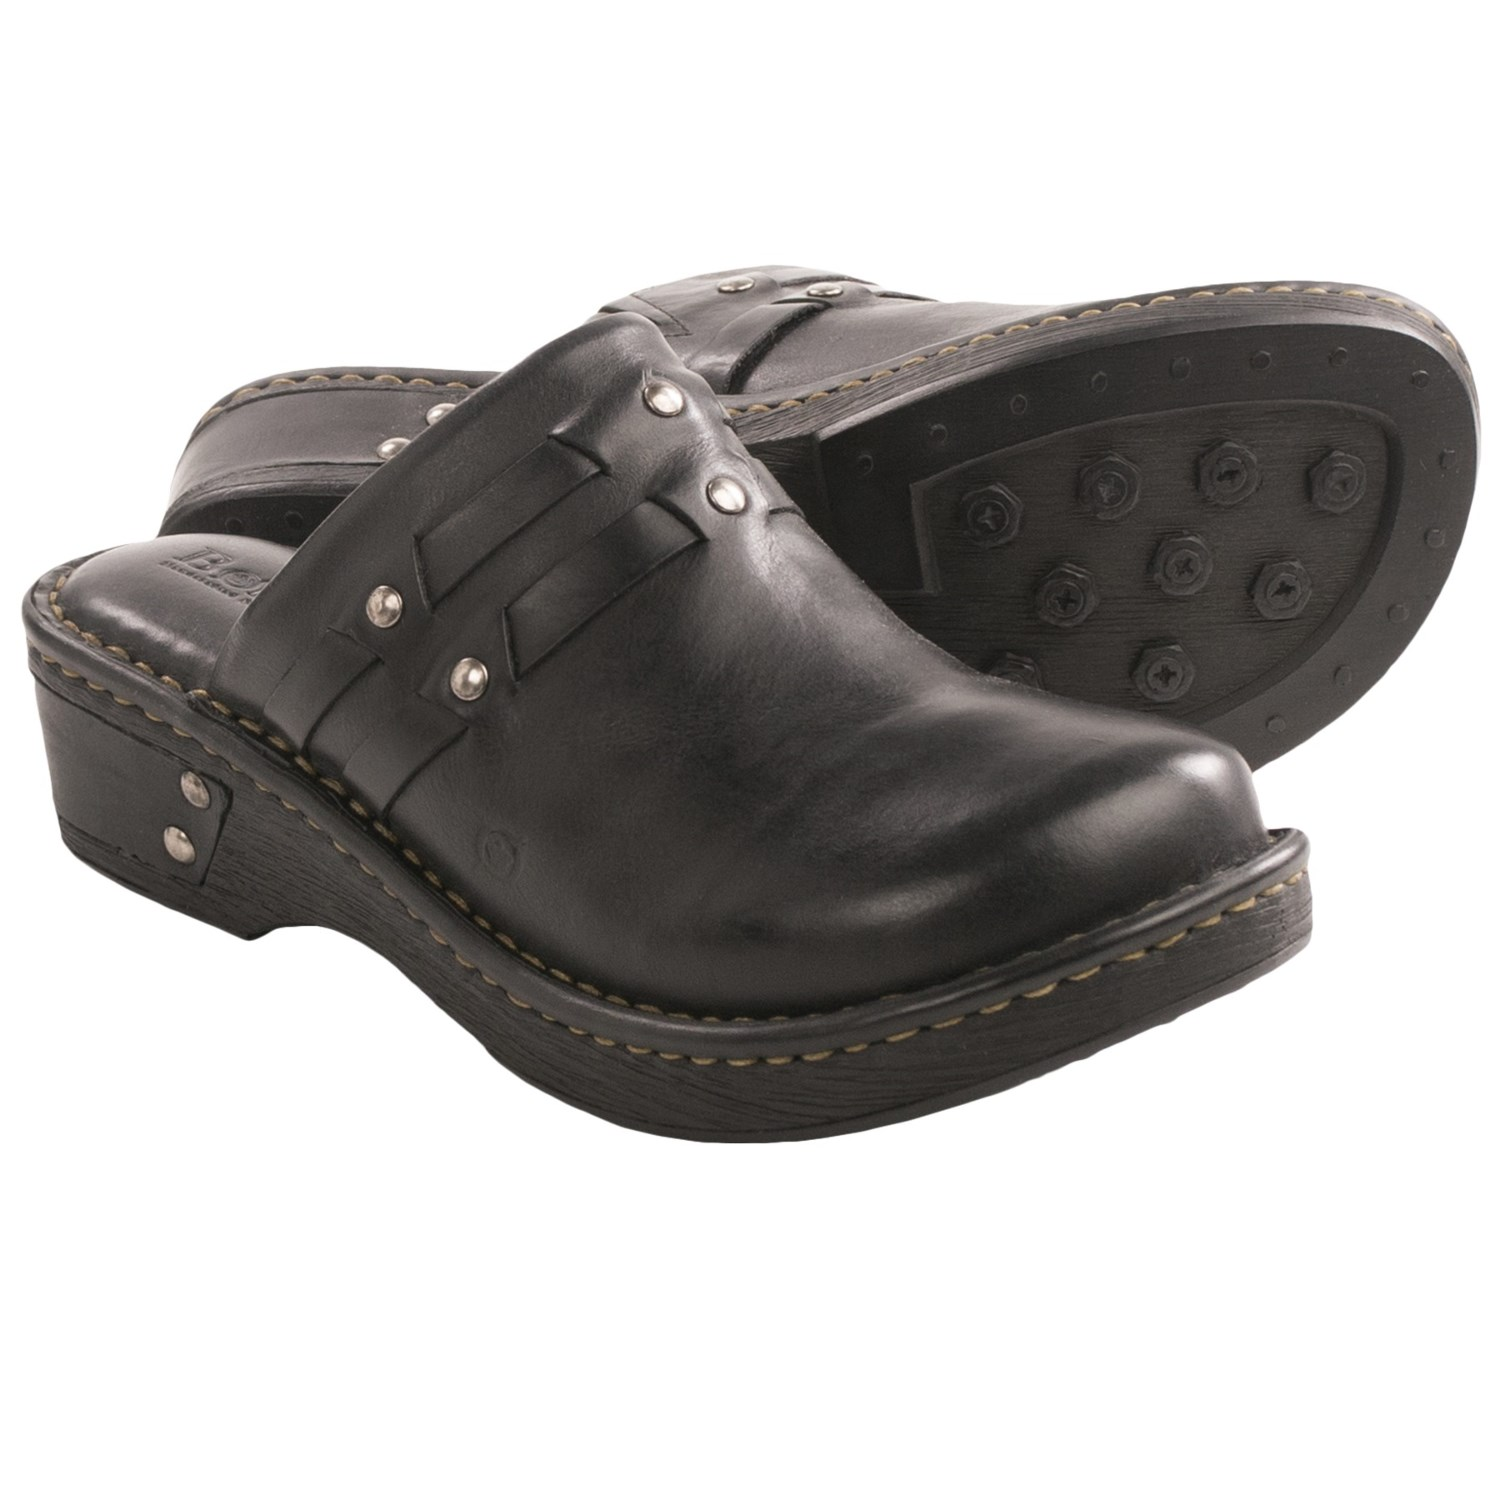 Premium leather and expert innovation make women's clogs and mules perfect for any cut of jeans or add an unexpected finish to a romantic dress.